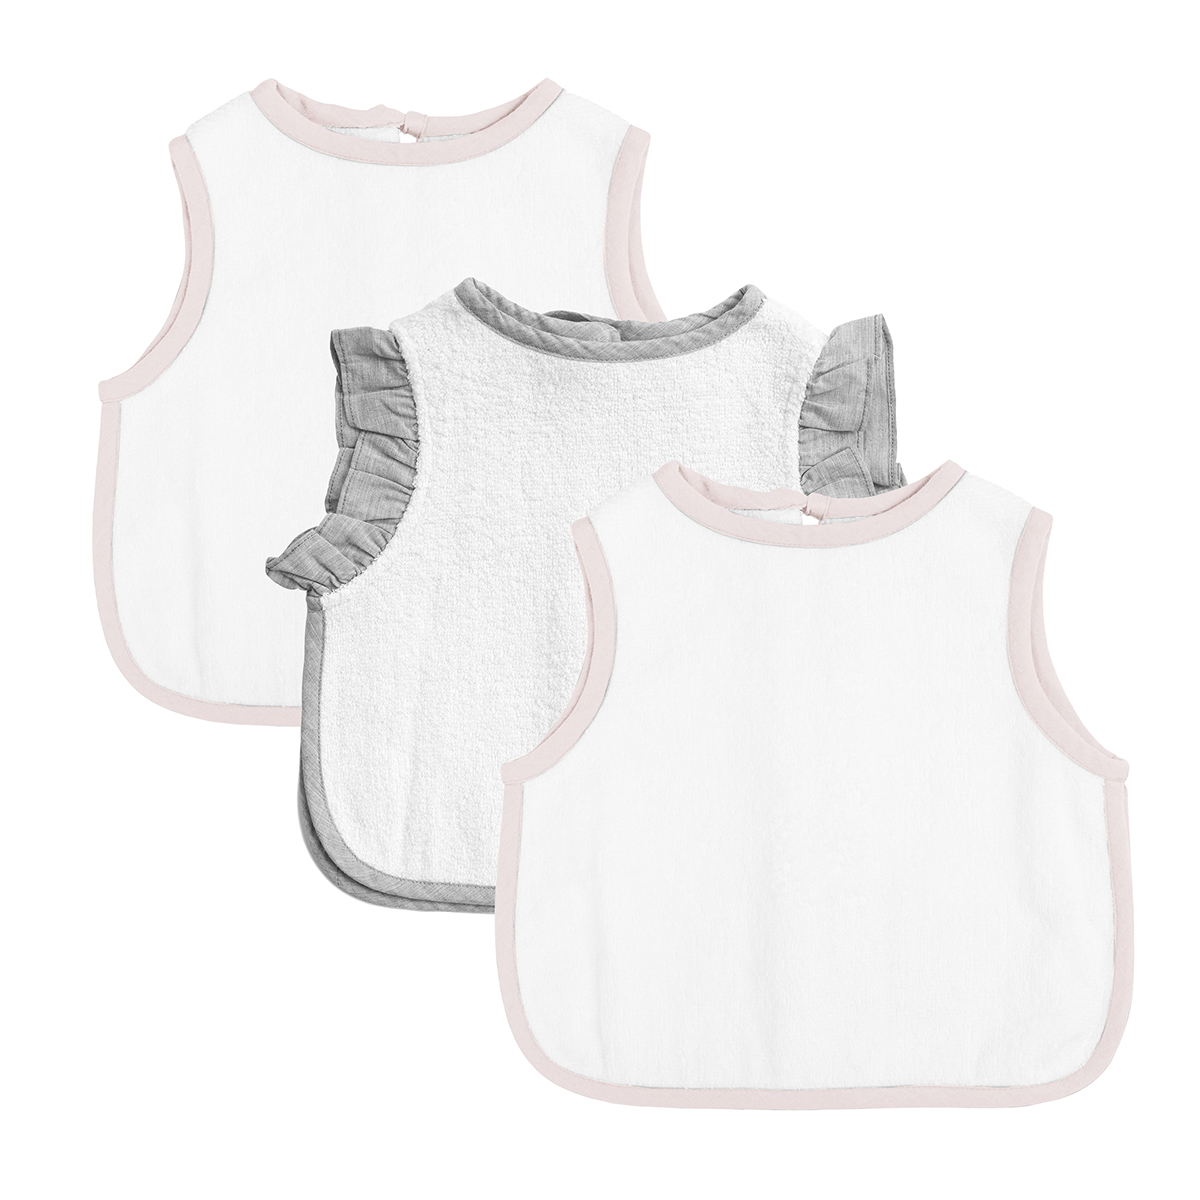 Louelle Apron Bibs Gift Set of 3 Blossom Pink & White FW19